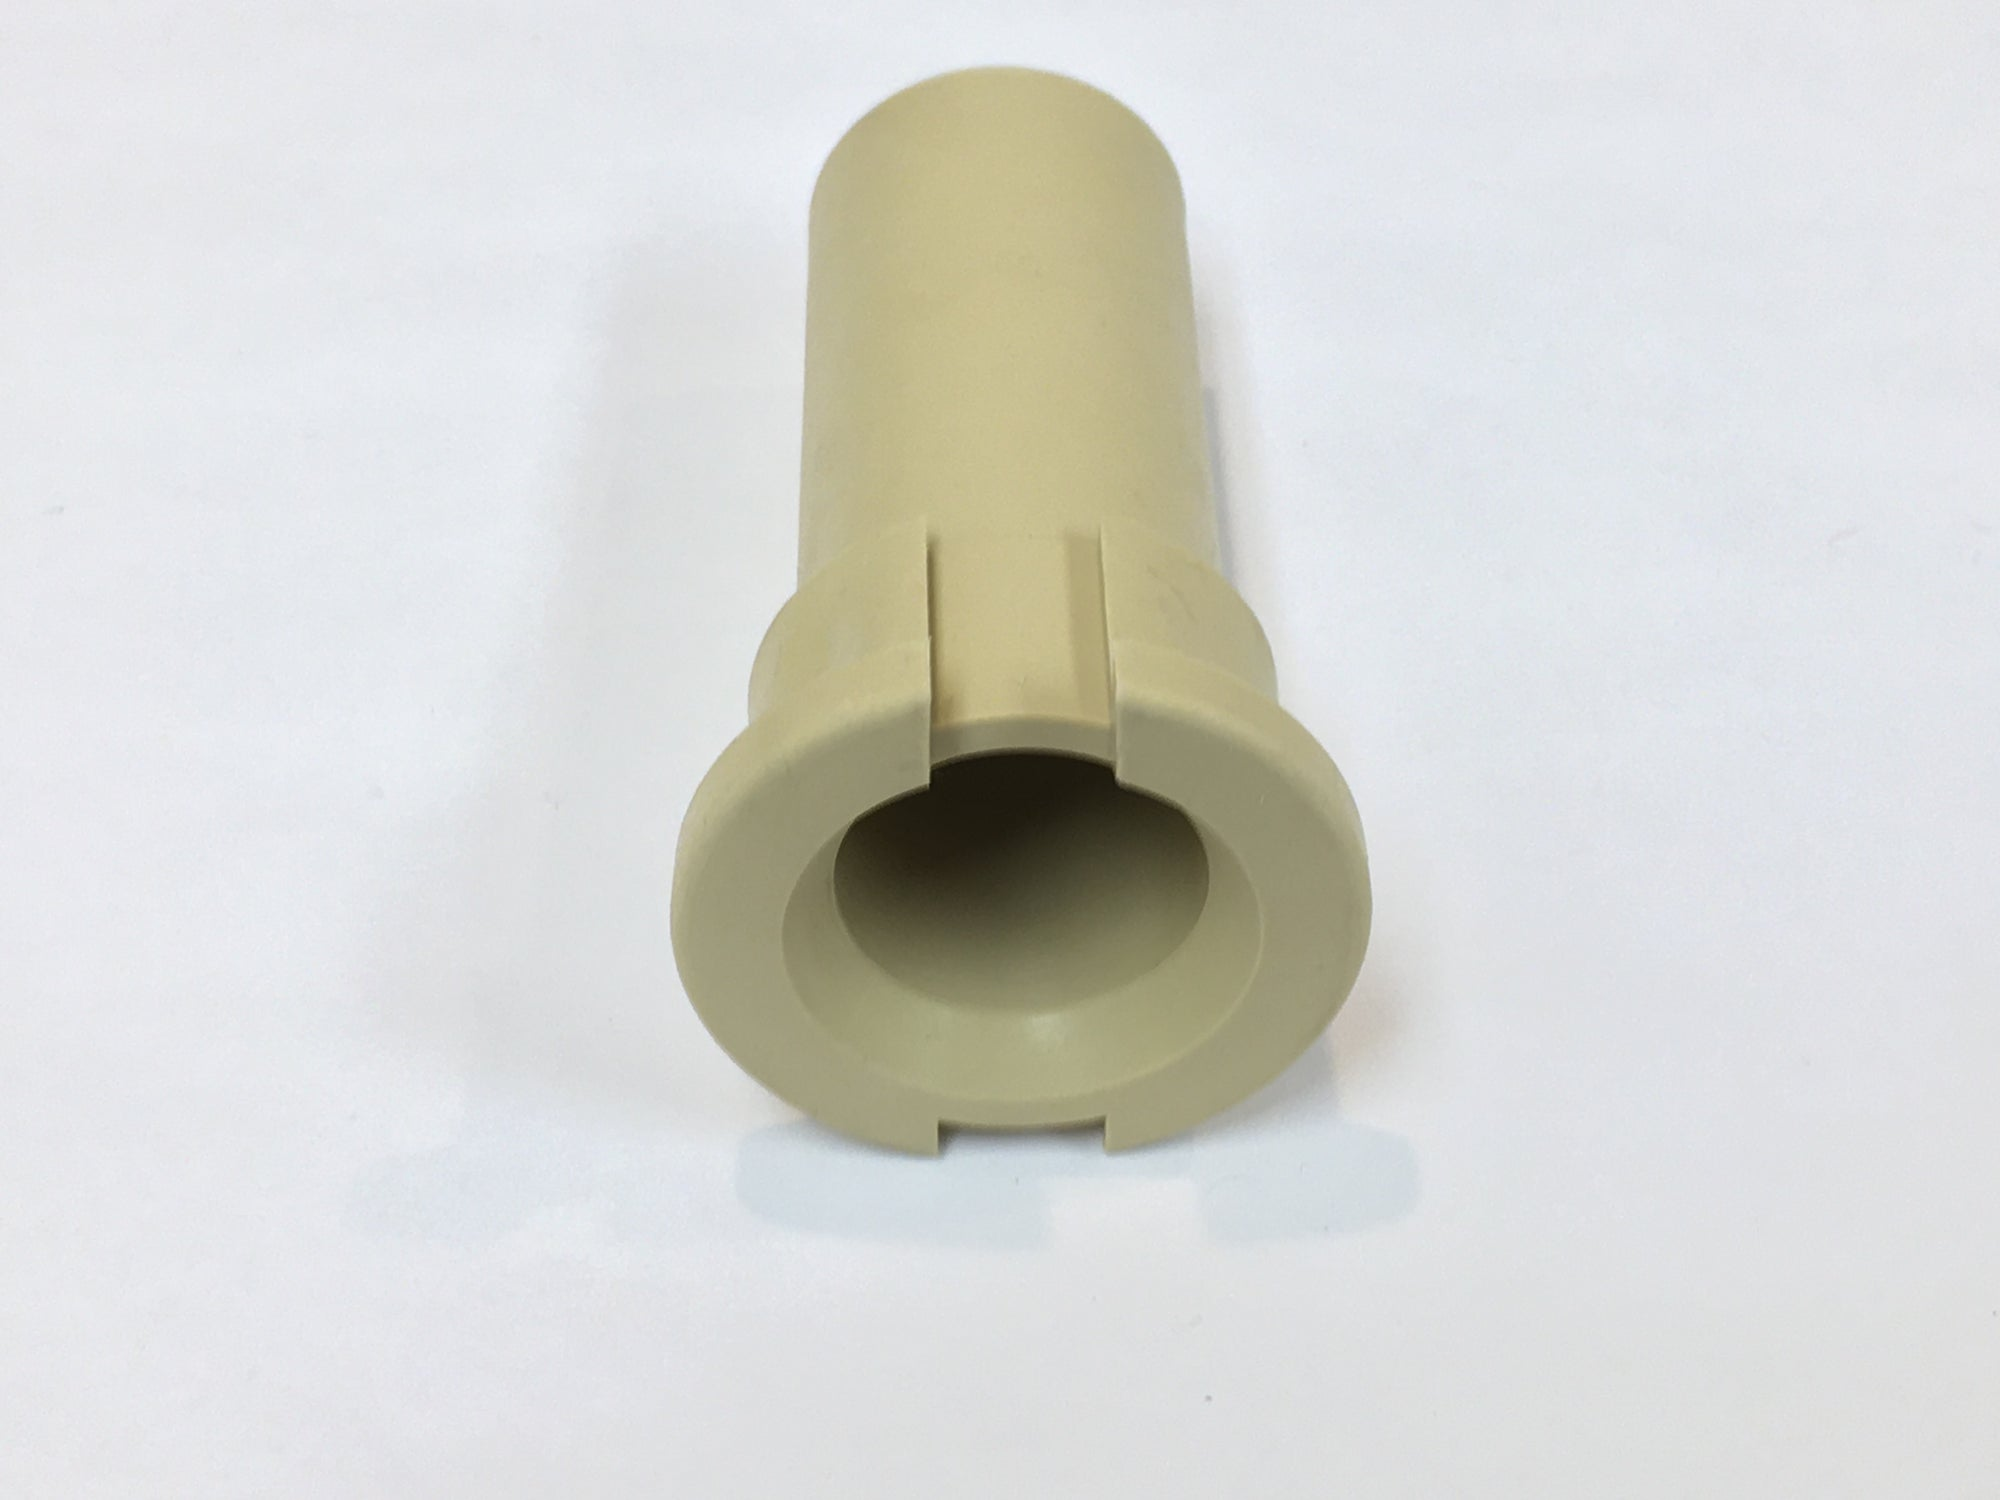 King Pin Top Bushing - Tan (CAMO) - shop.cmpgroup.net